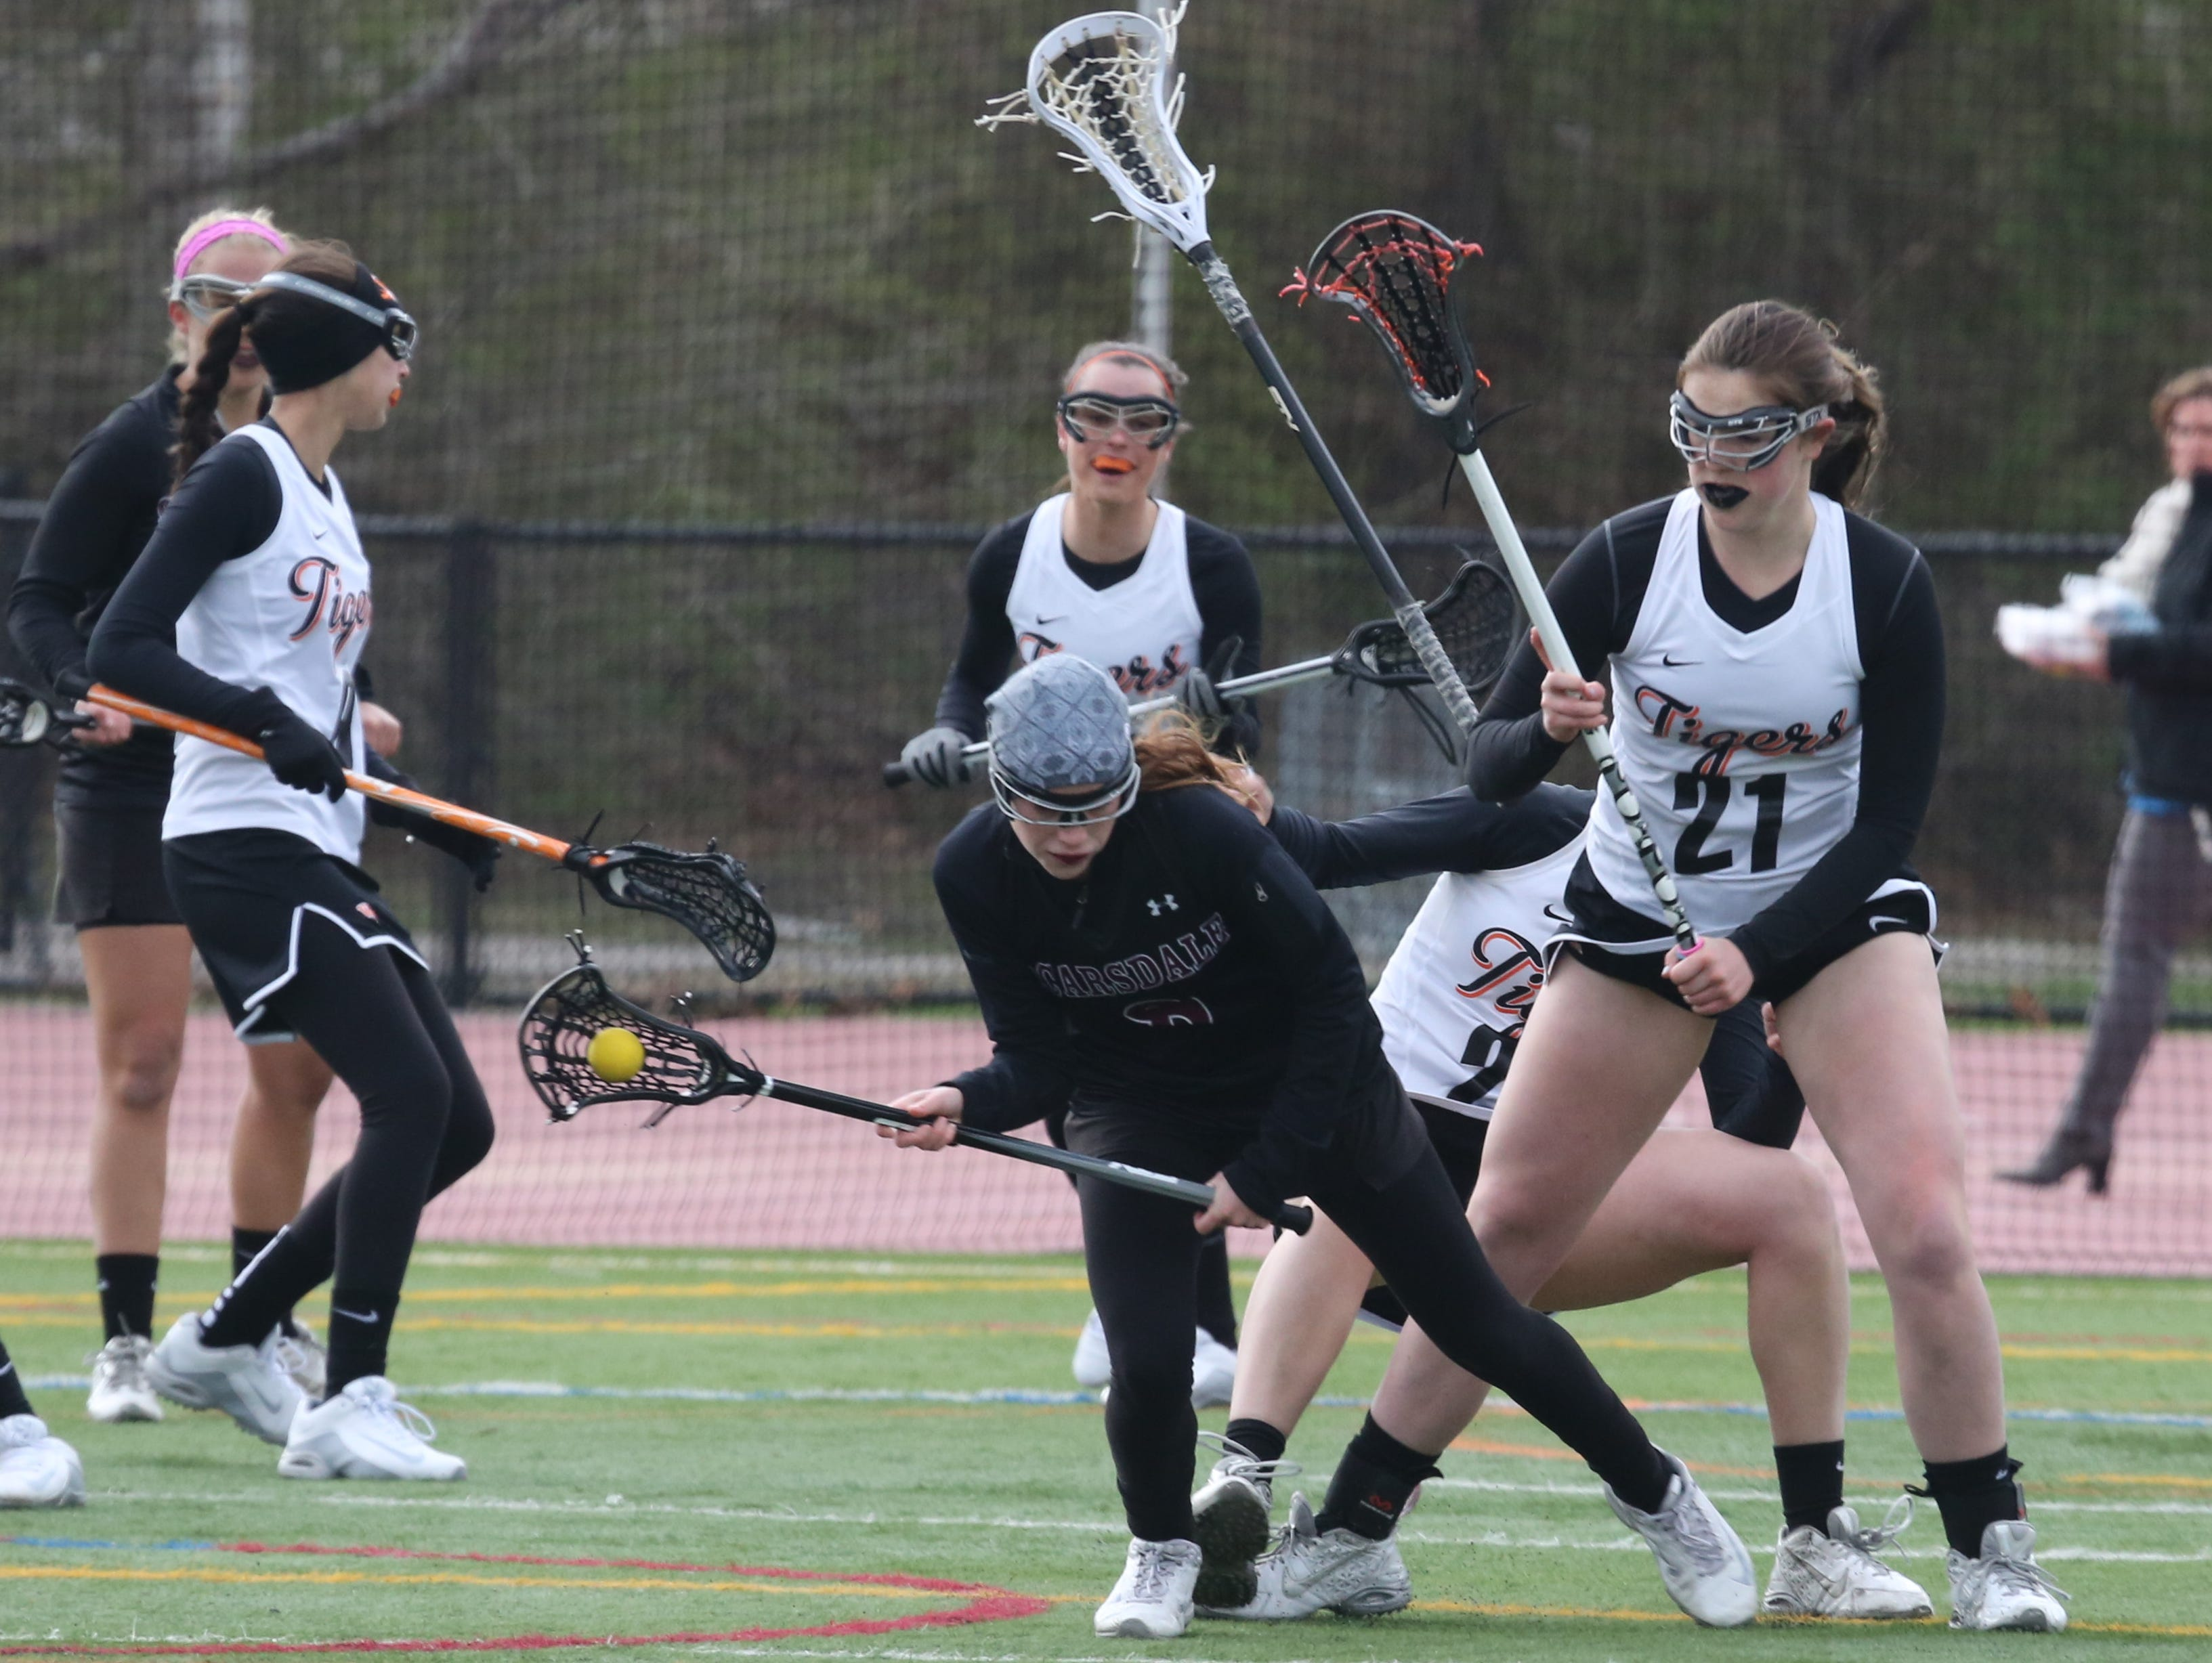 White Plains' Abigail Leone puts pressure on Scarsdale's Jilly Mehlman during their girls lacrosse game at White Plains High School, April 6, 2016.